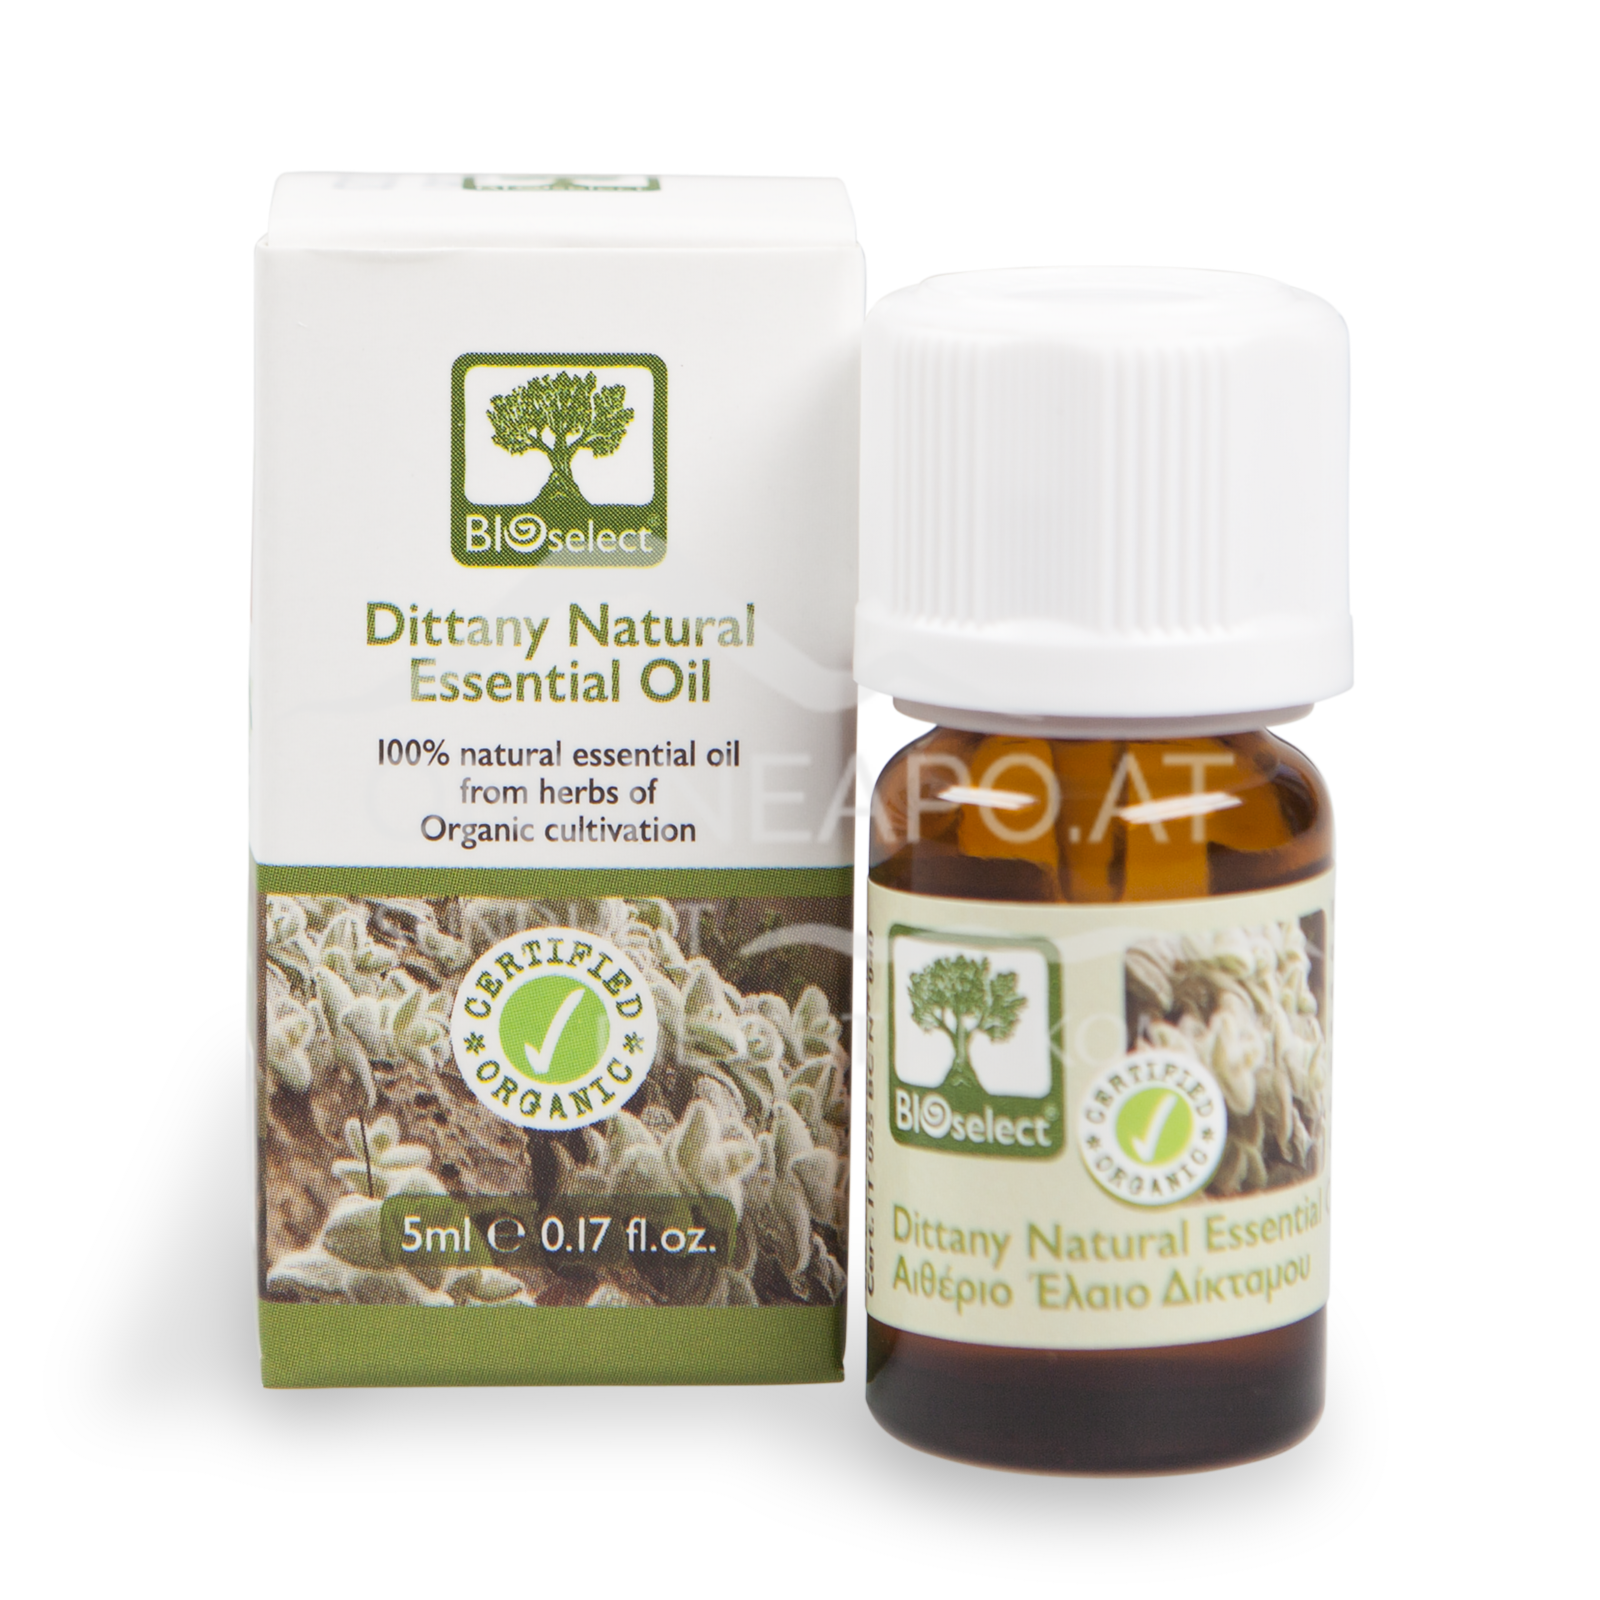 Bioselect Dittany Natural Essential Oil Certified Organic